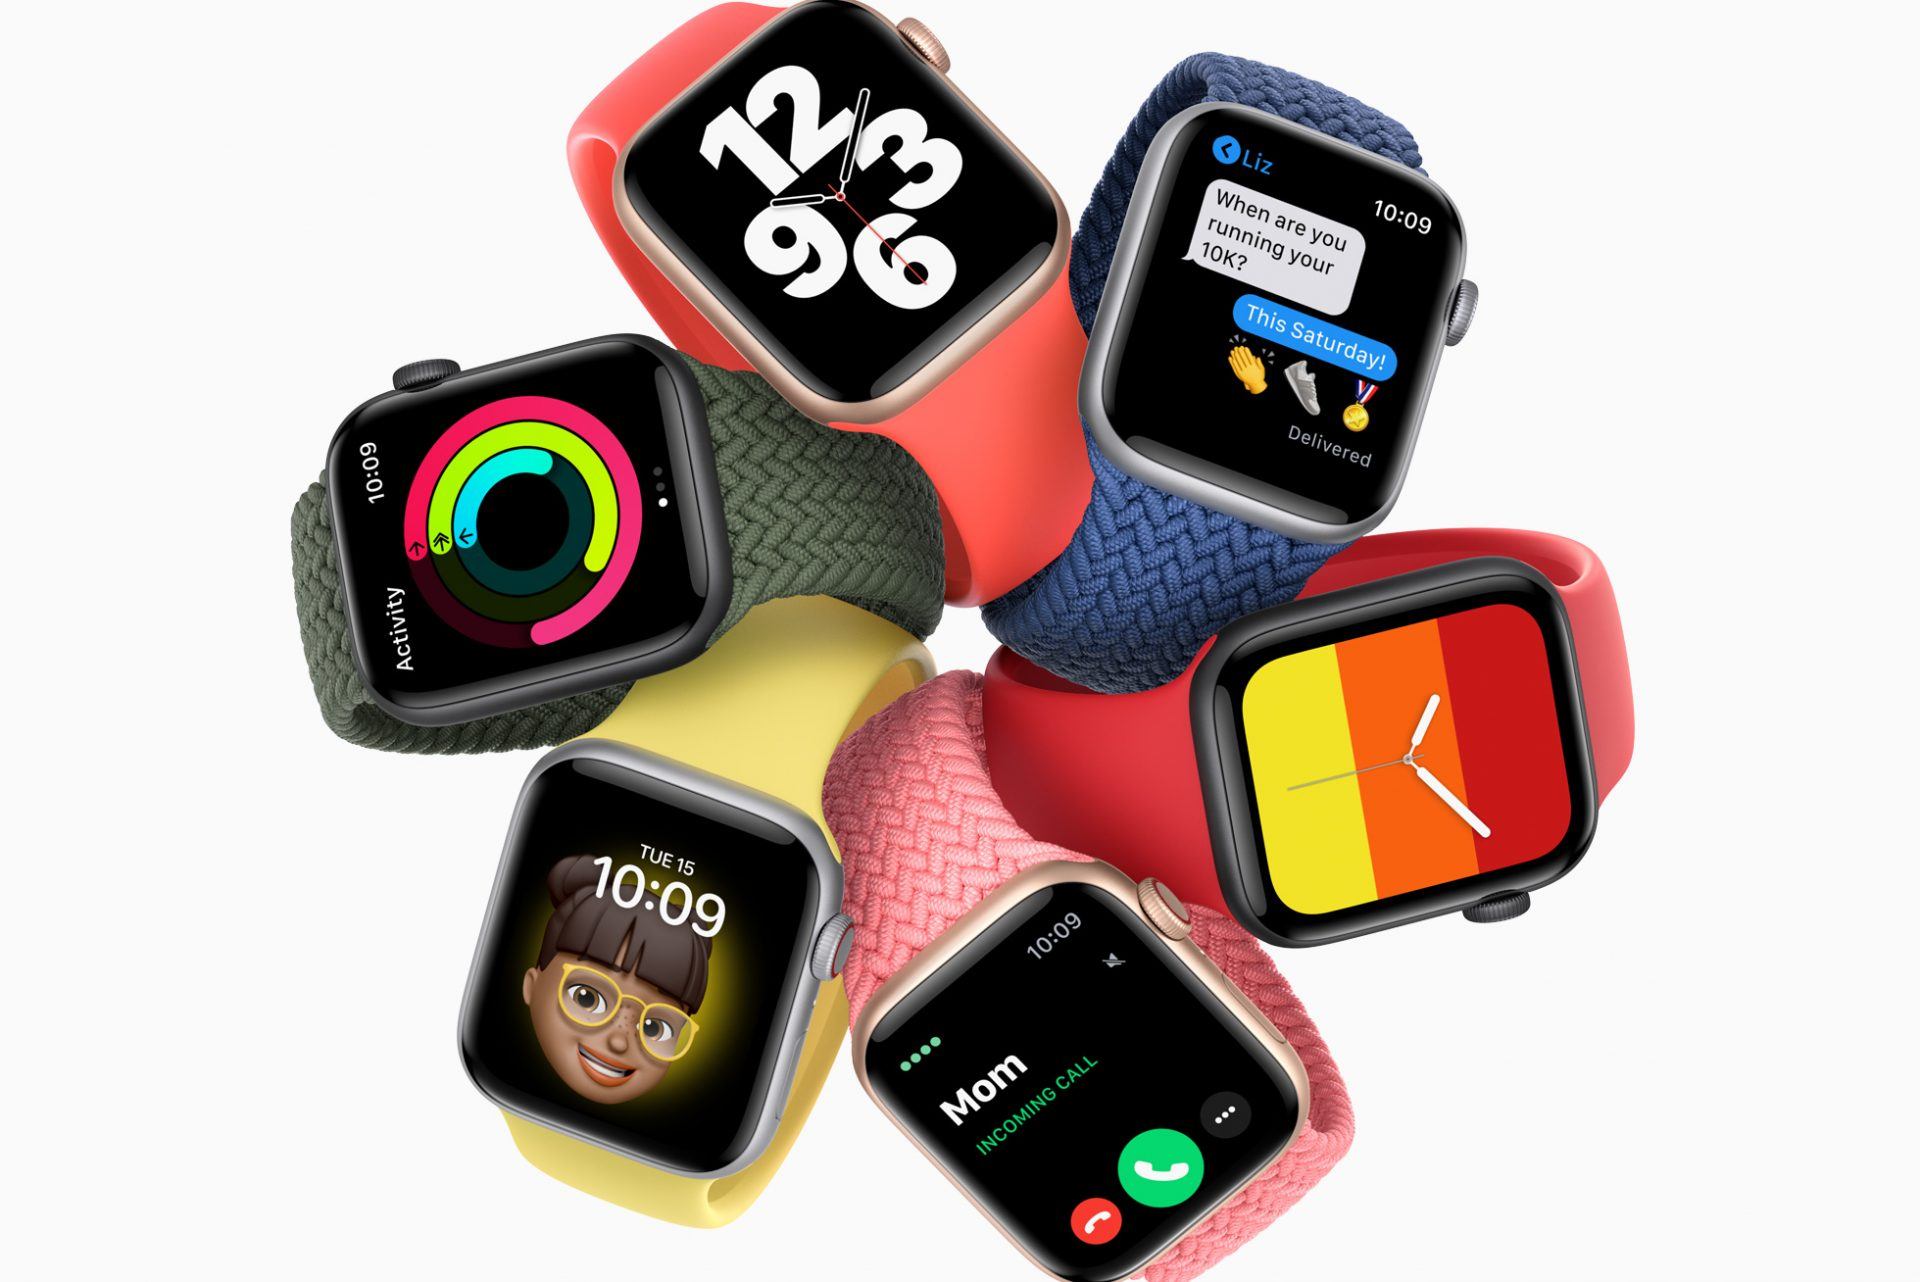 Apple Watches in a circular arrangement